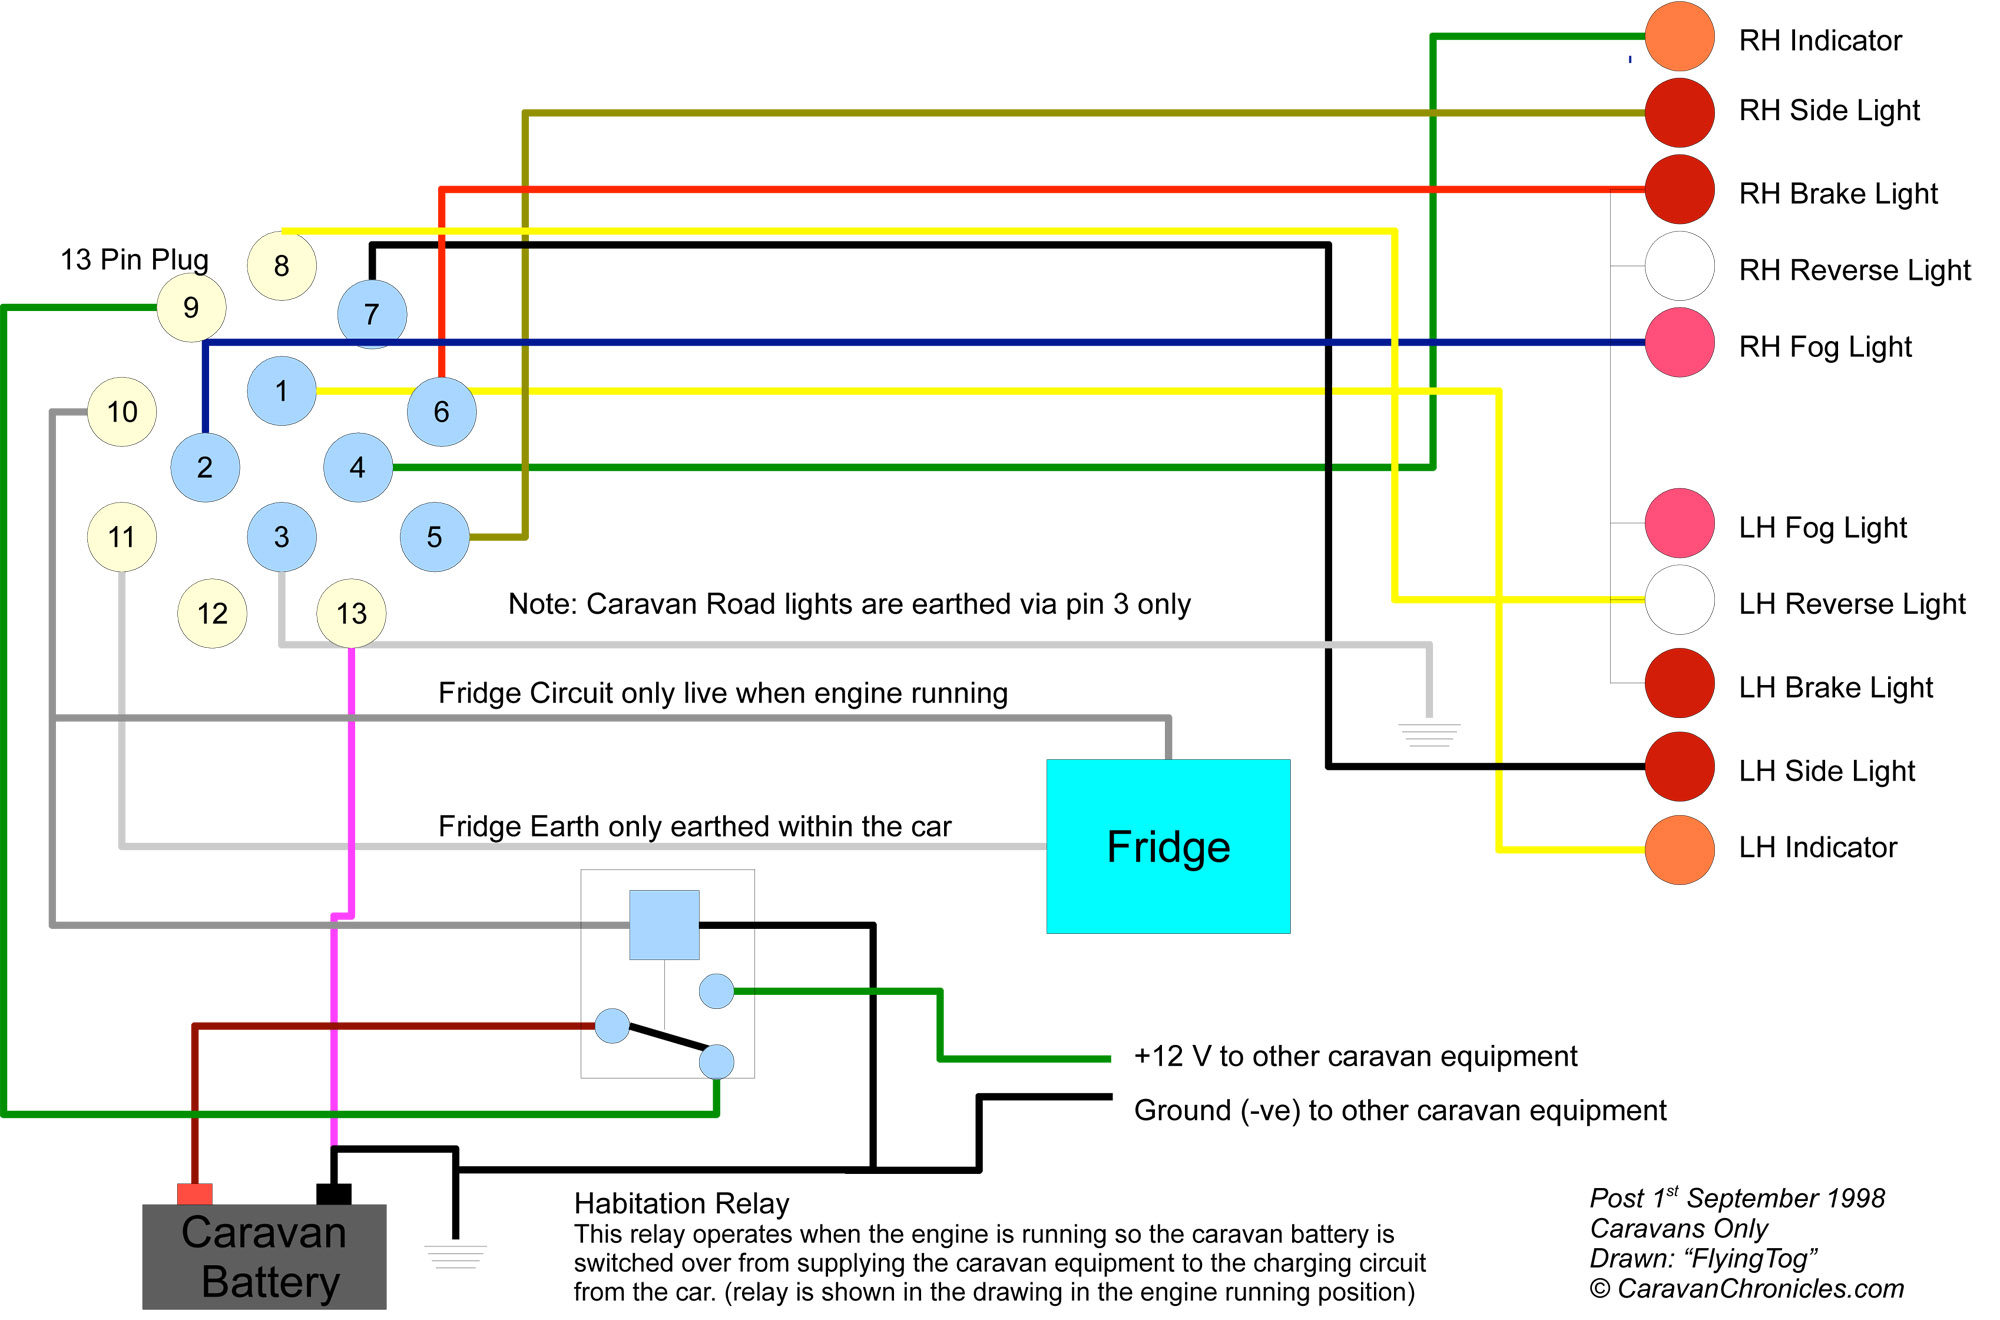 caravan wiring 13 pin understanding caravan and tow car electrics caravan chronicles caravan wiring diagram 240v at mifinder.co